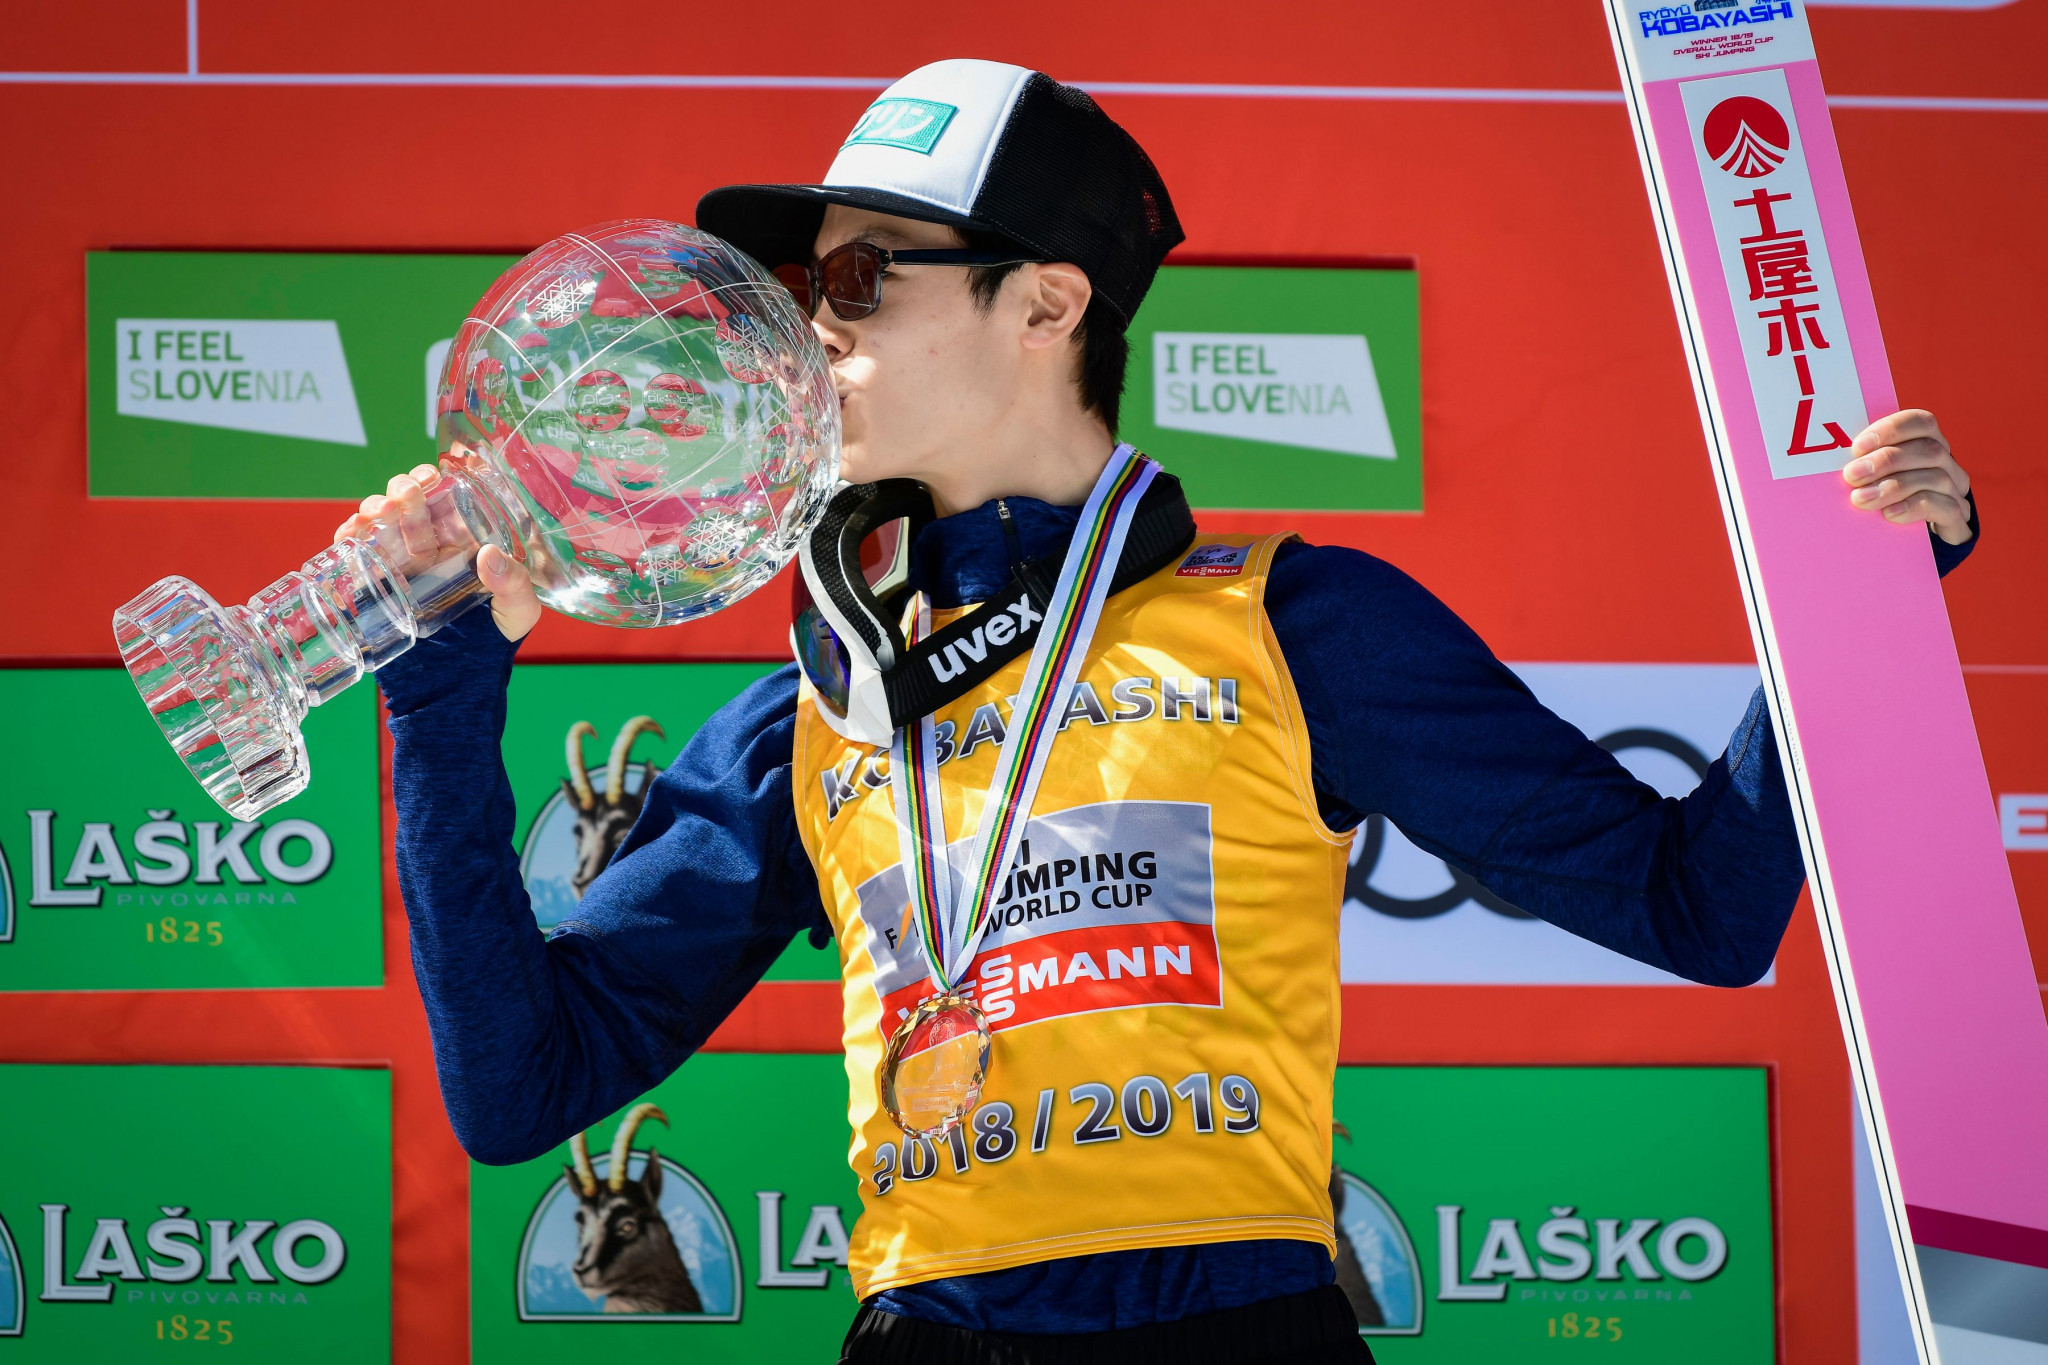 Ski Jumping World Cup champions Kobayashi and Lundby end season in style with victories